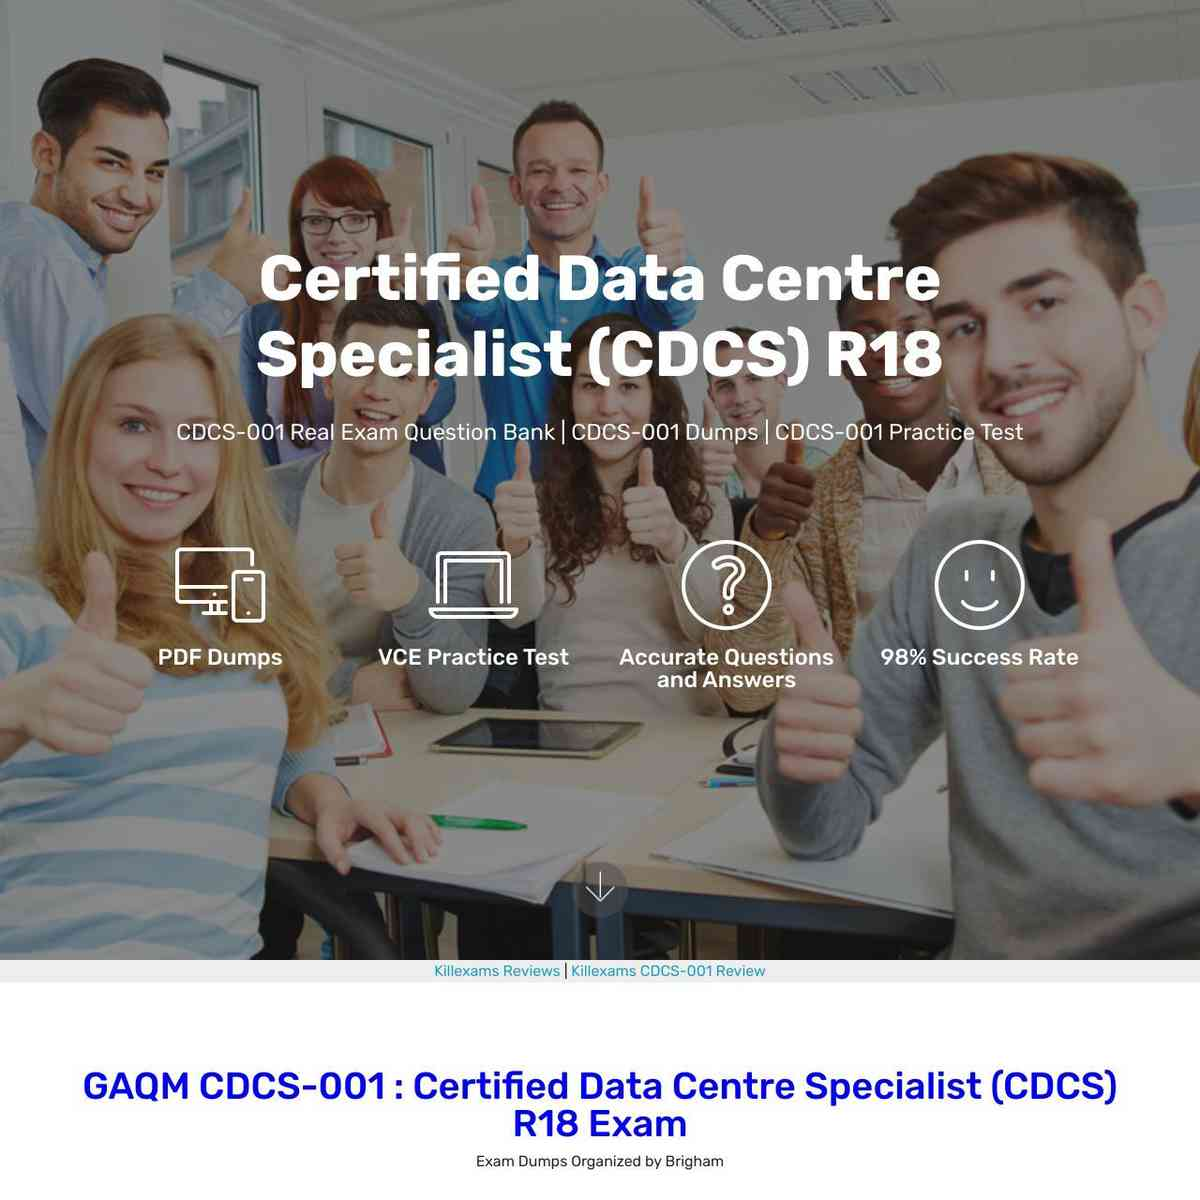 Finalize your CDCS-001 Practice Test with these CDCS-001 Exam Questions and Actual Questions